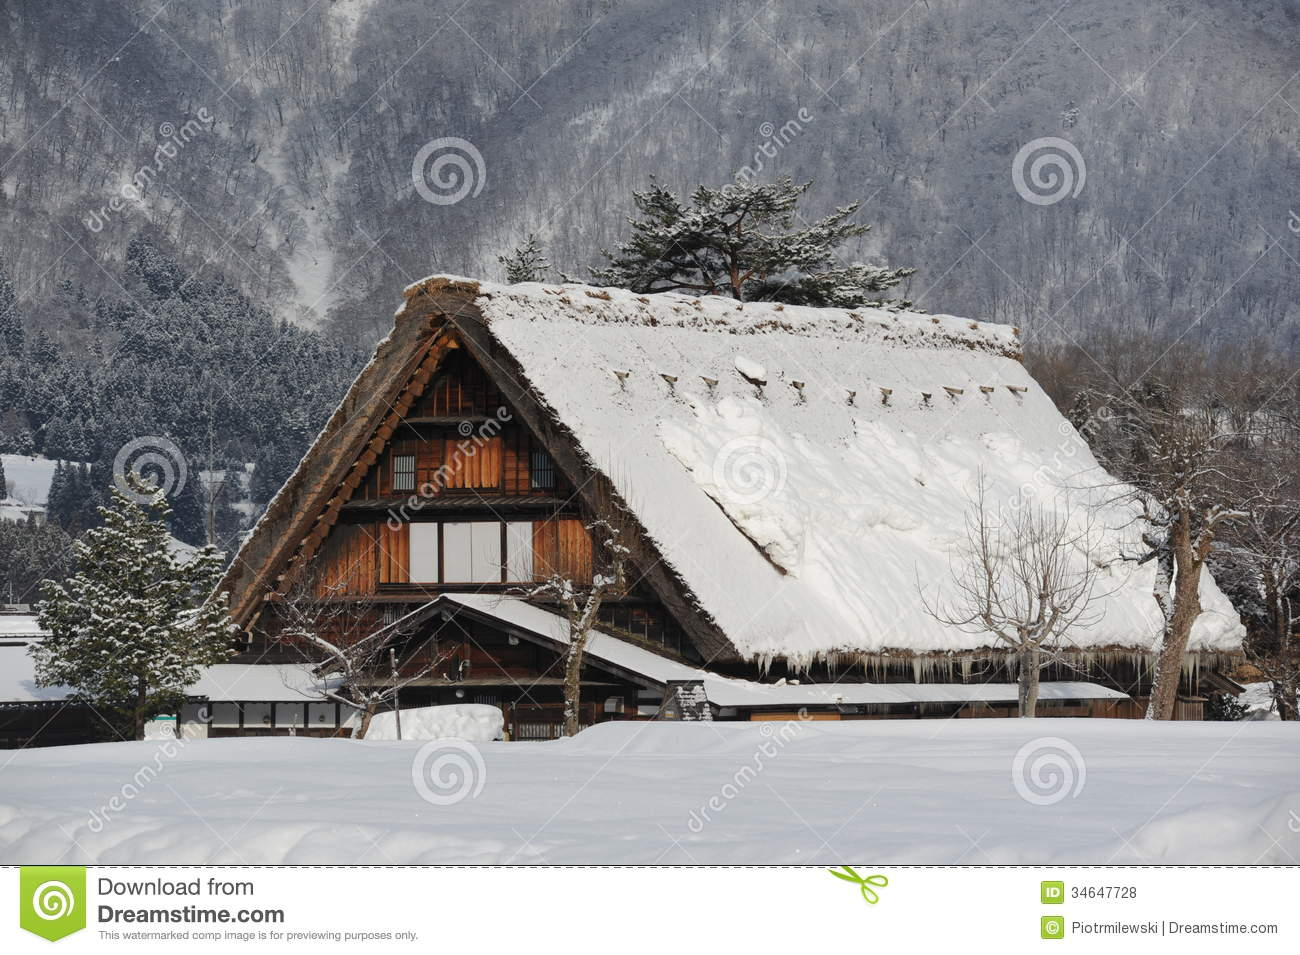 Thatched Roof House Covered In Snow In Winter Royalty Free